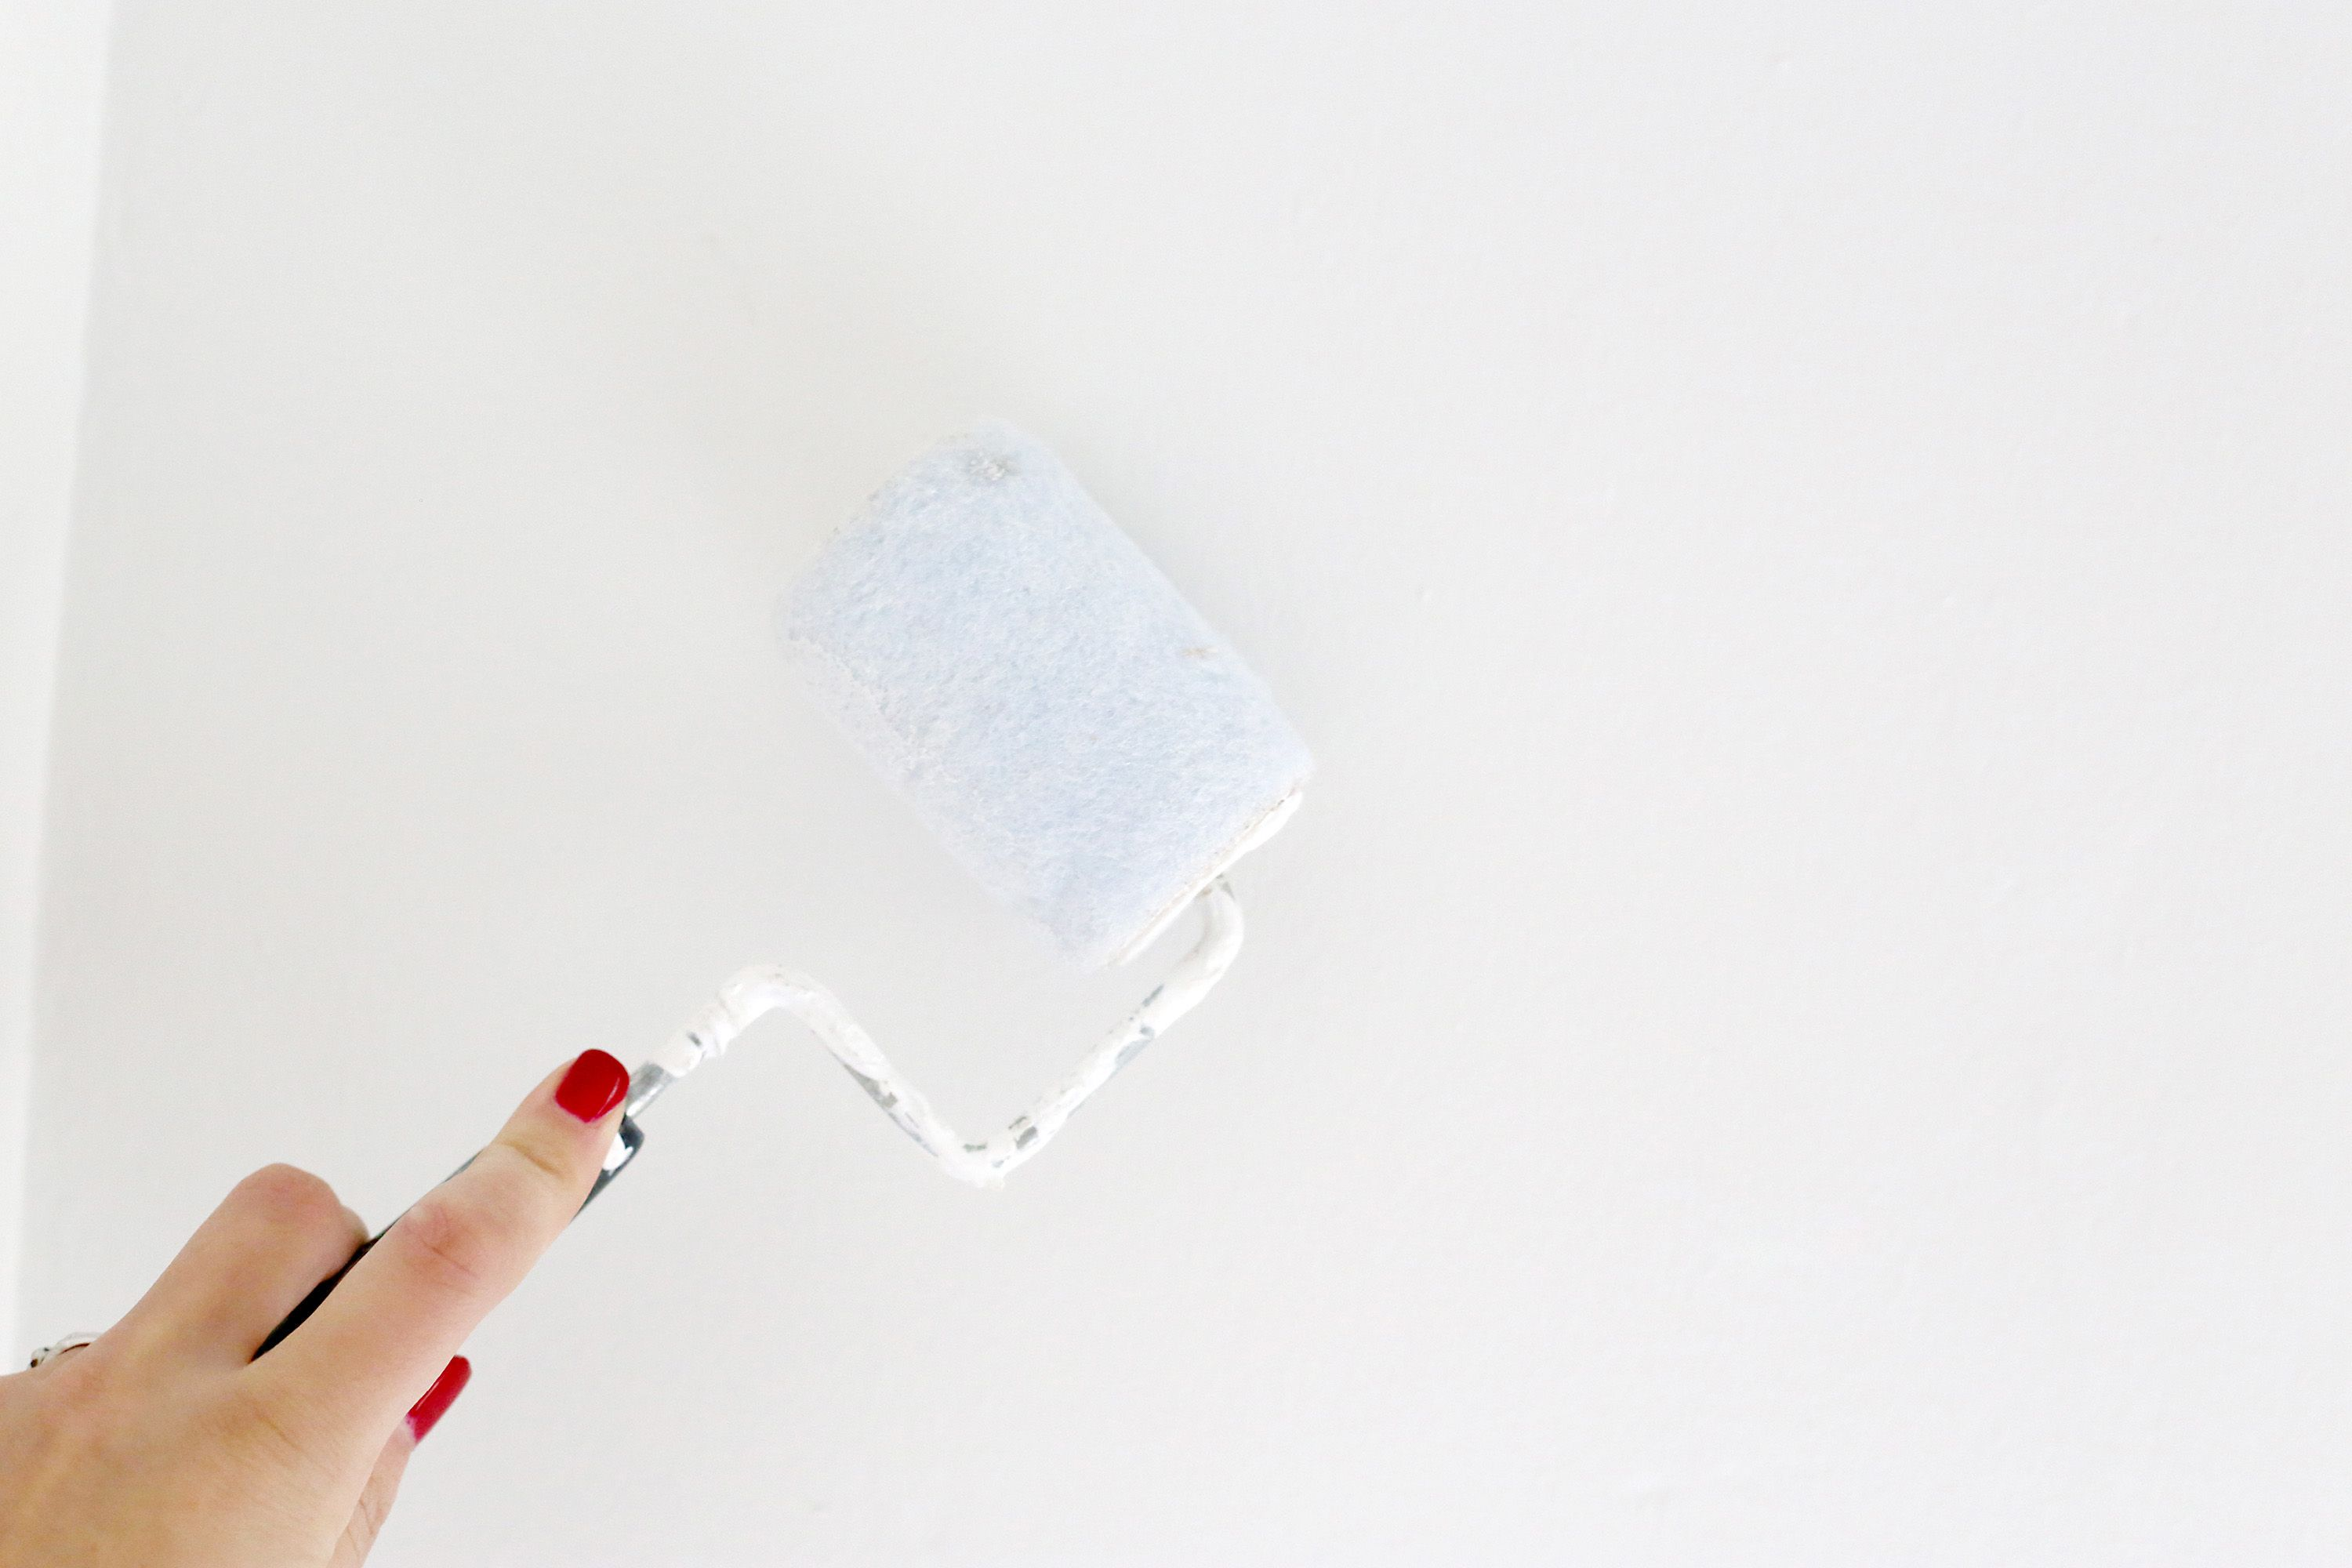 How to Remove Wallpaper Glue Residue | Hunker